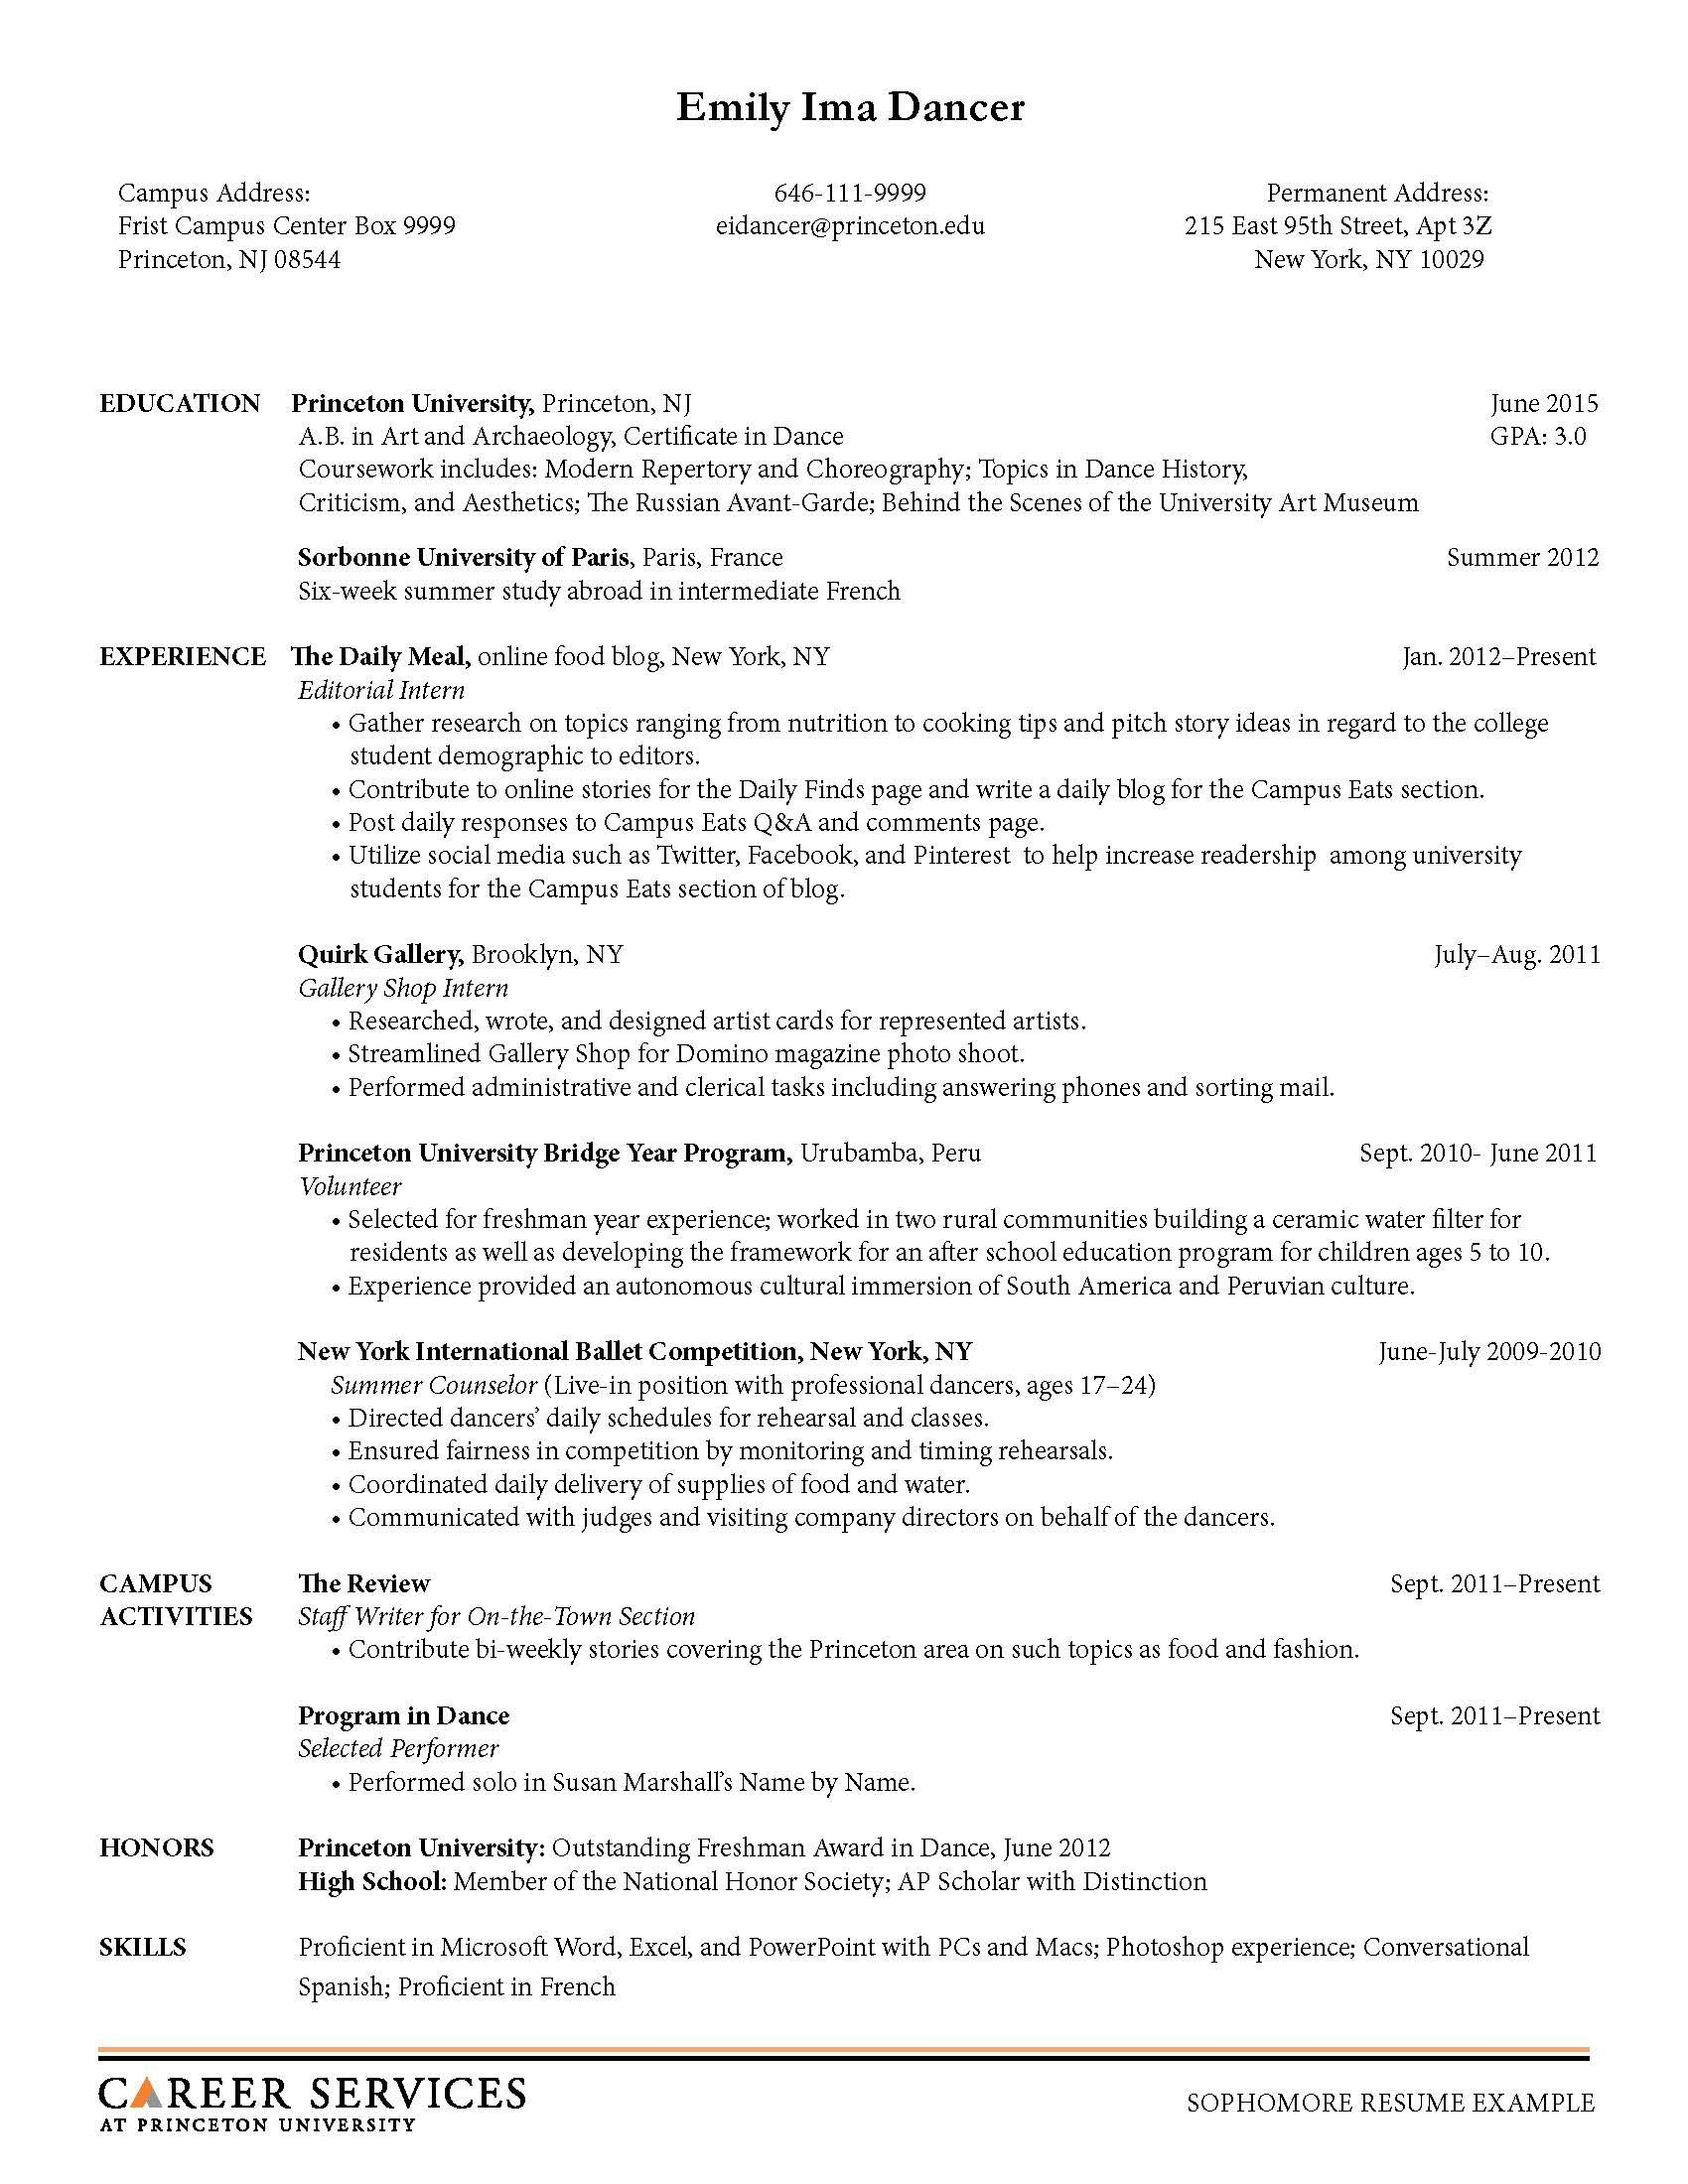 Opposenewapstandardsus  Winning Sample Resume Resume And Career On Pinterest With Fetching A Good Cover Letter For A Resume Besides Real Estate Investor Resume Furthermore Resume Keywords List By Industry With Archaic Objective For A General Resume Also How To Word Skills On A Resume In Addition Resume For Phd Application And Fix My Resume Free As Well As Sample Resume For Construction Worker Additionally Good Resume Headline From Pinterestcom With Opposenewapstandardsus  Fetching Sample Resume Resume And Career On Pinterest With Archaic A Good Cover Letter For A Resume Besides Real Estate Investor Resume Furthermore Resume Keywords List By Industry And Winning Objective For A General Resume Also How To Word Skills On A Resume In Addition Resume For Phd Application From Pinterestcom